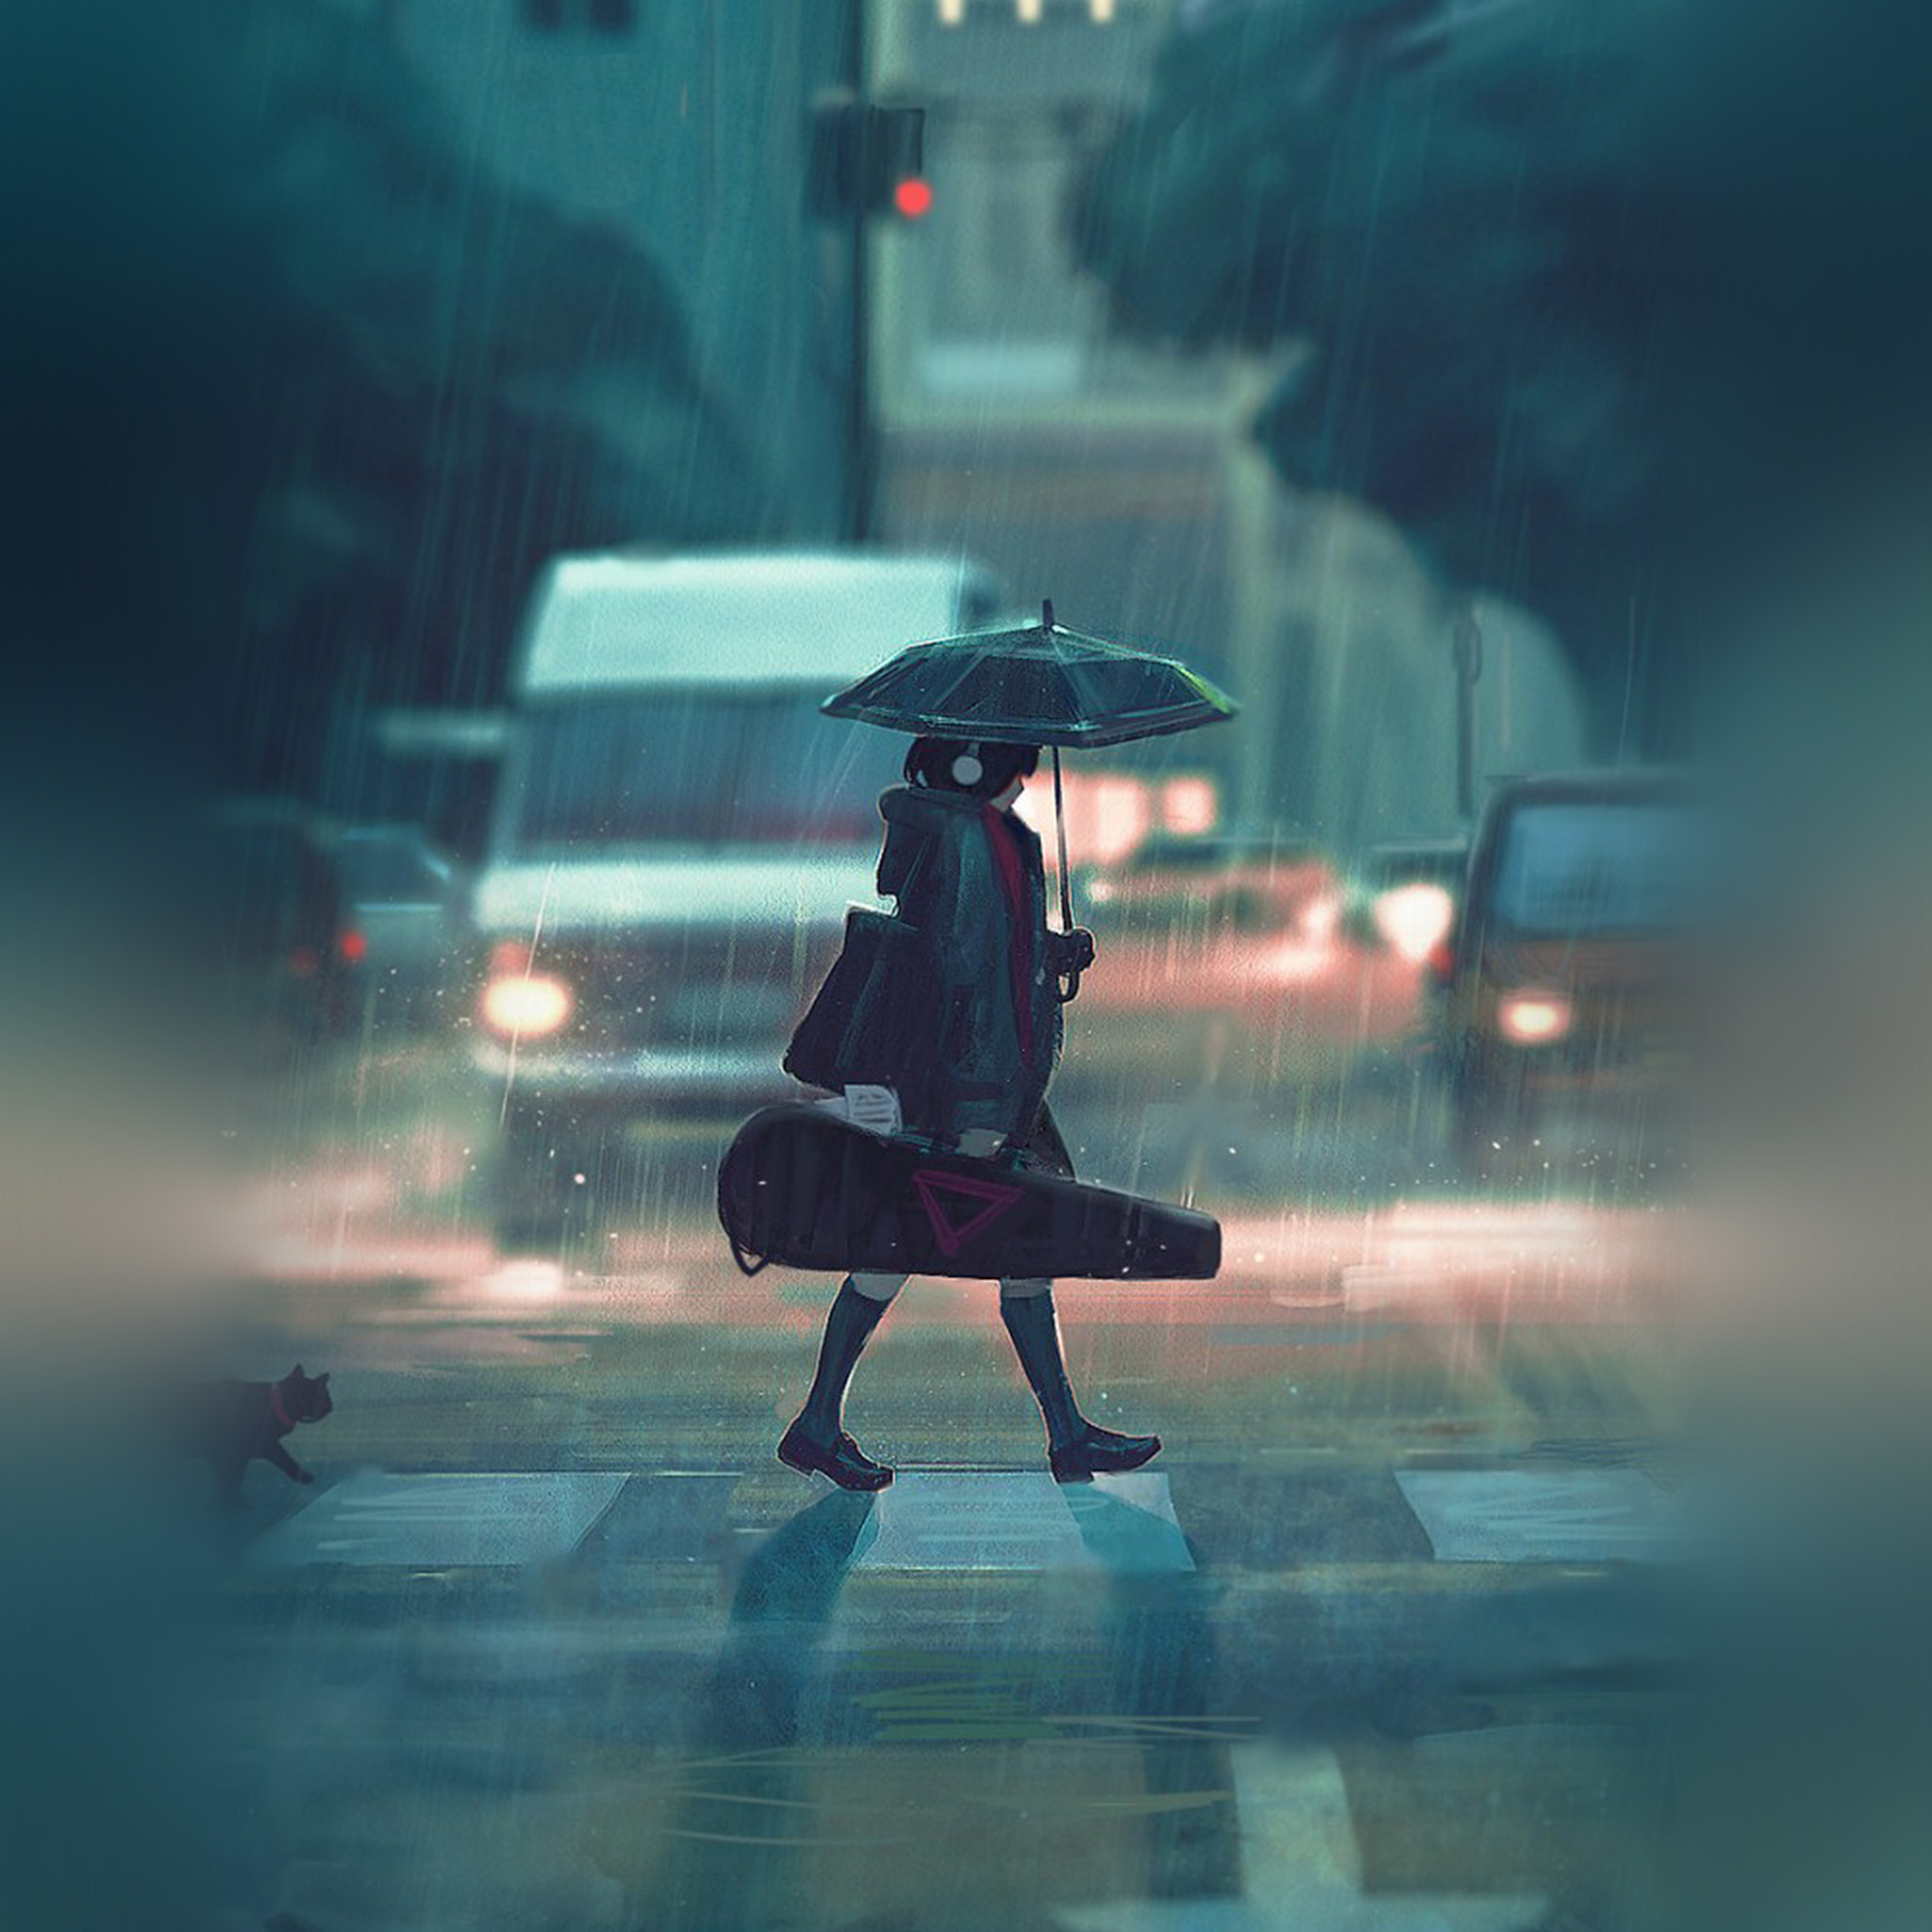 I love papers bc89 rainy day anime paint girl art - Anime rain wallpaper ...